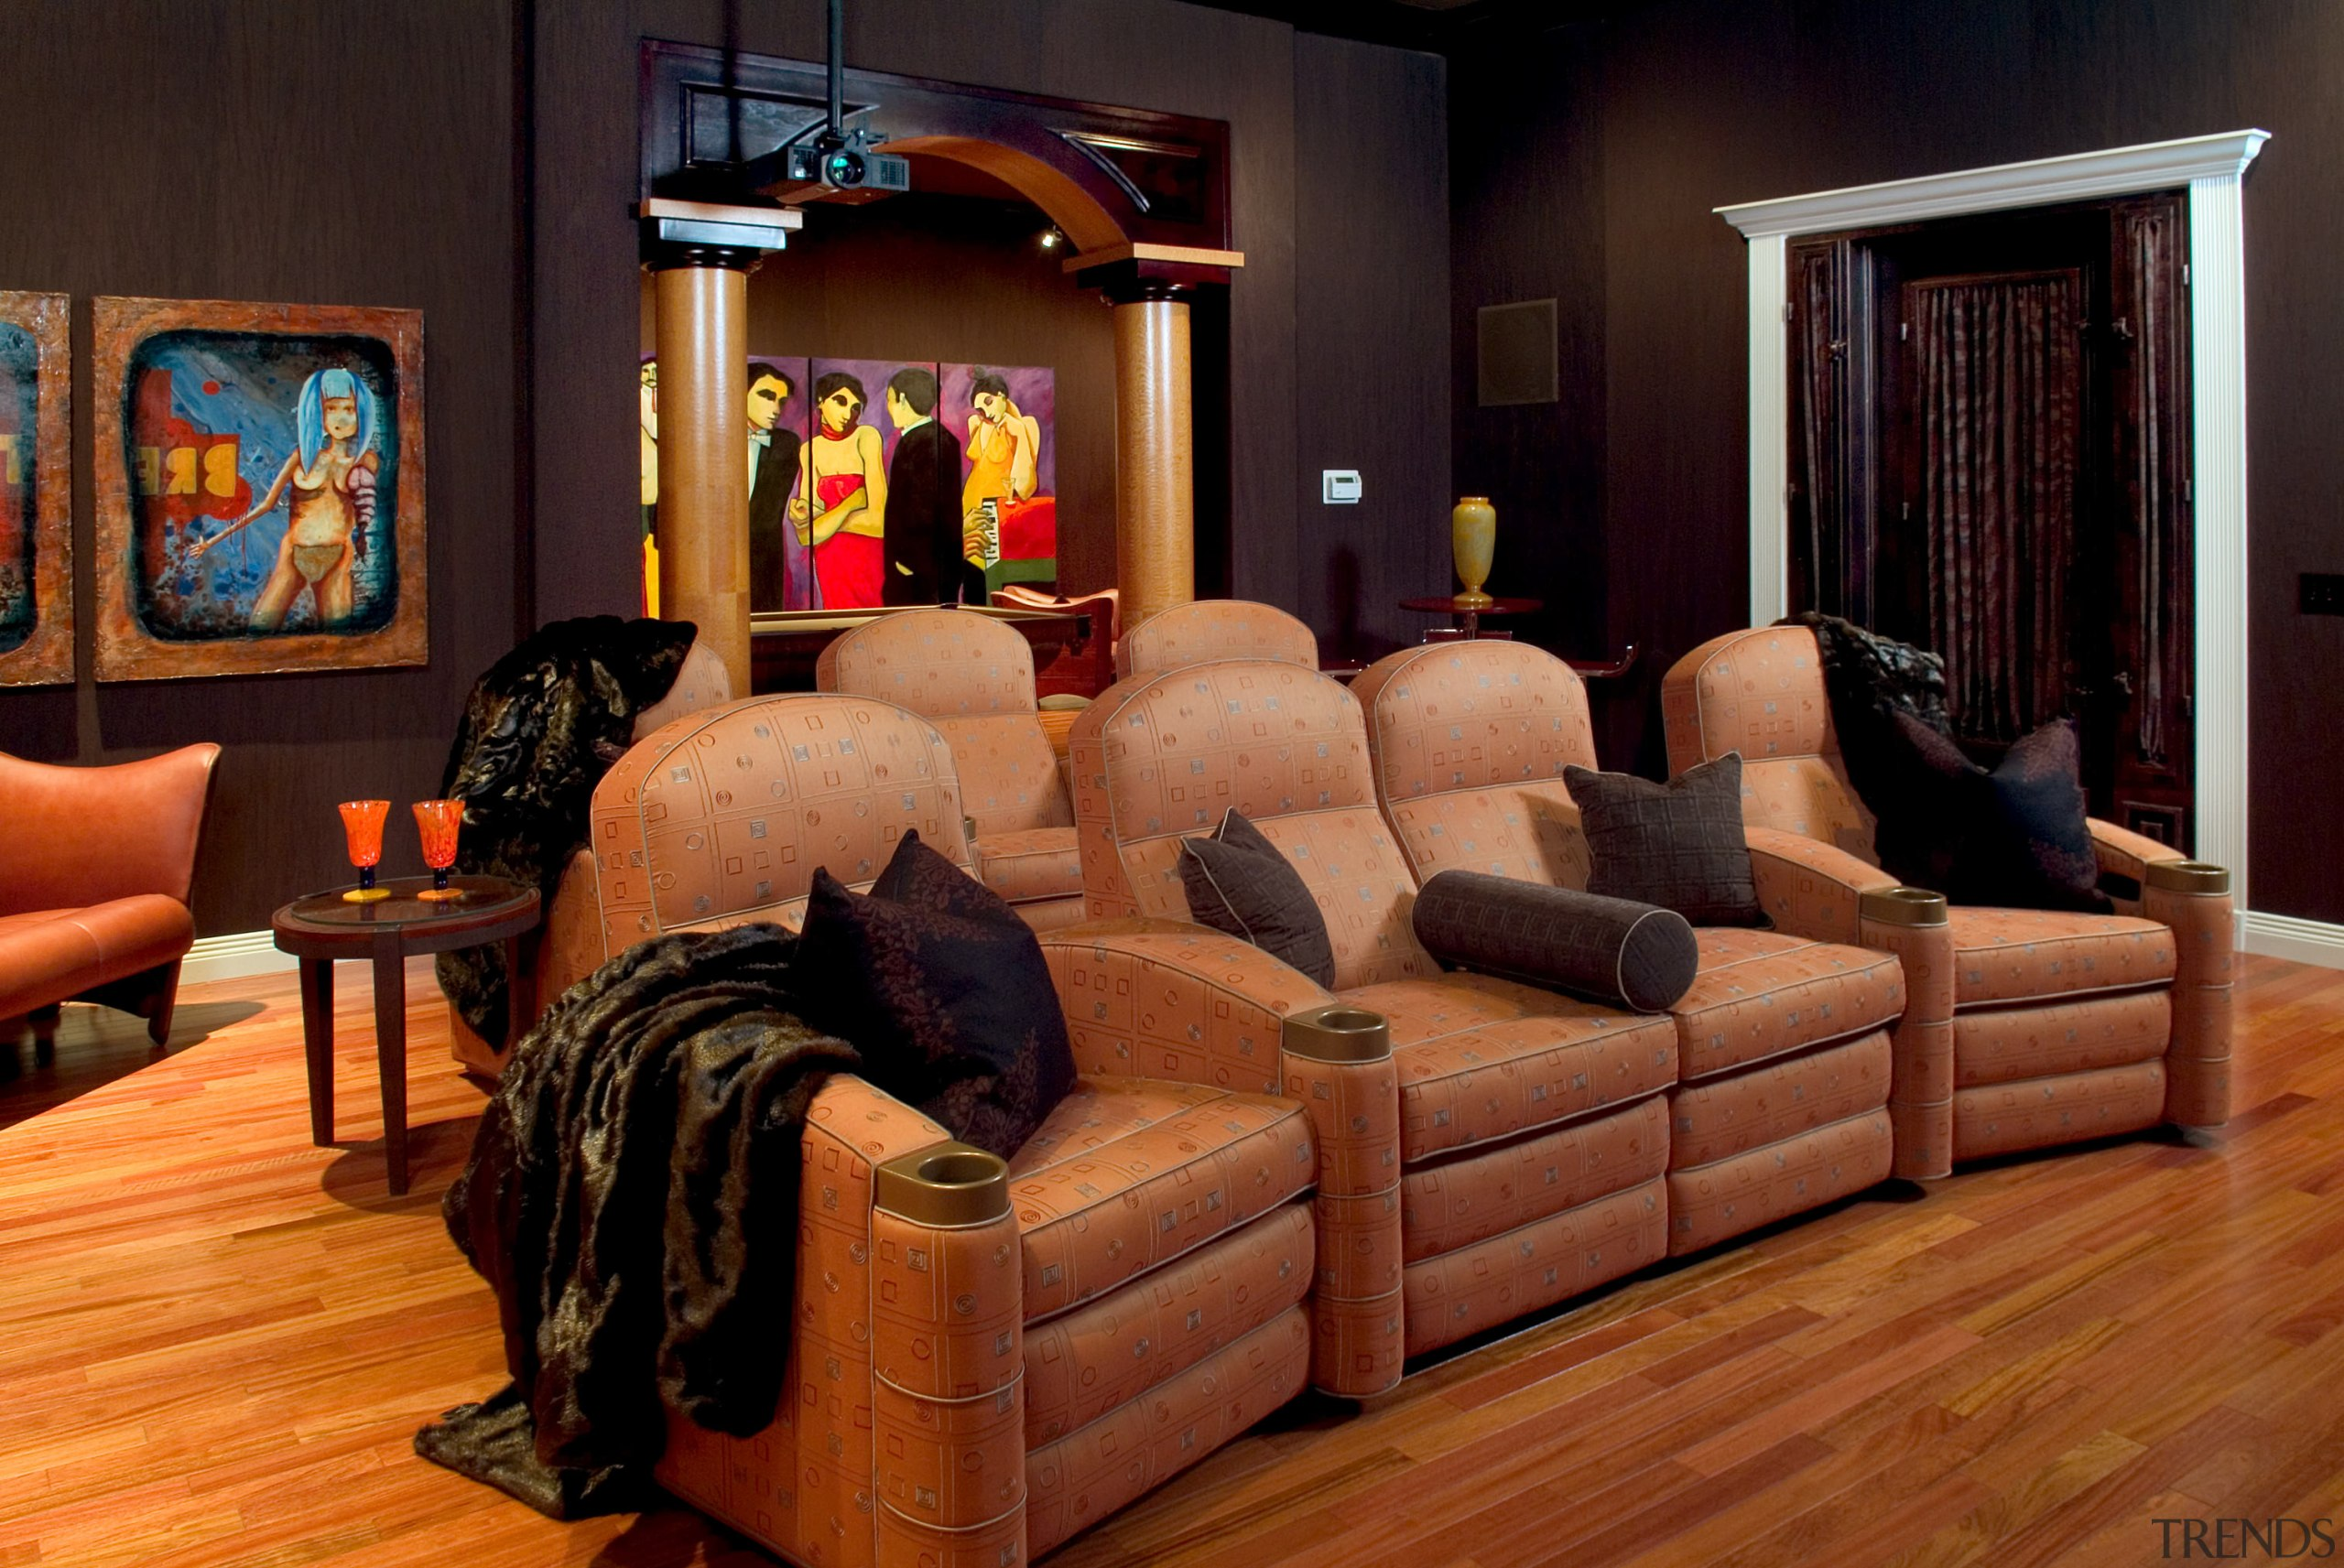 Theater room lazy boy chairs - Theater room floor, flooring, furniture, hardwood, home, interior design, living room, room, wood, black, brown